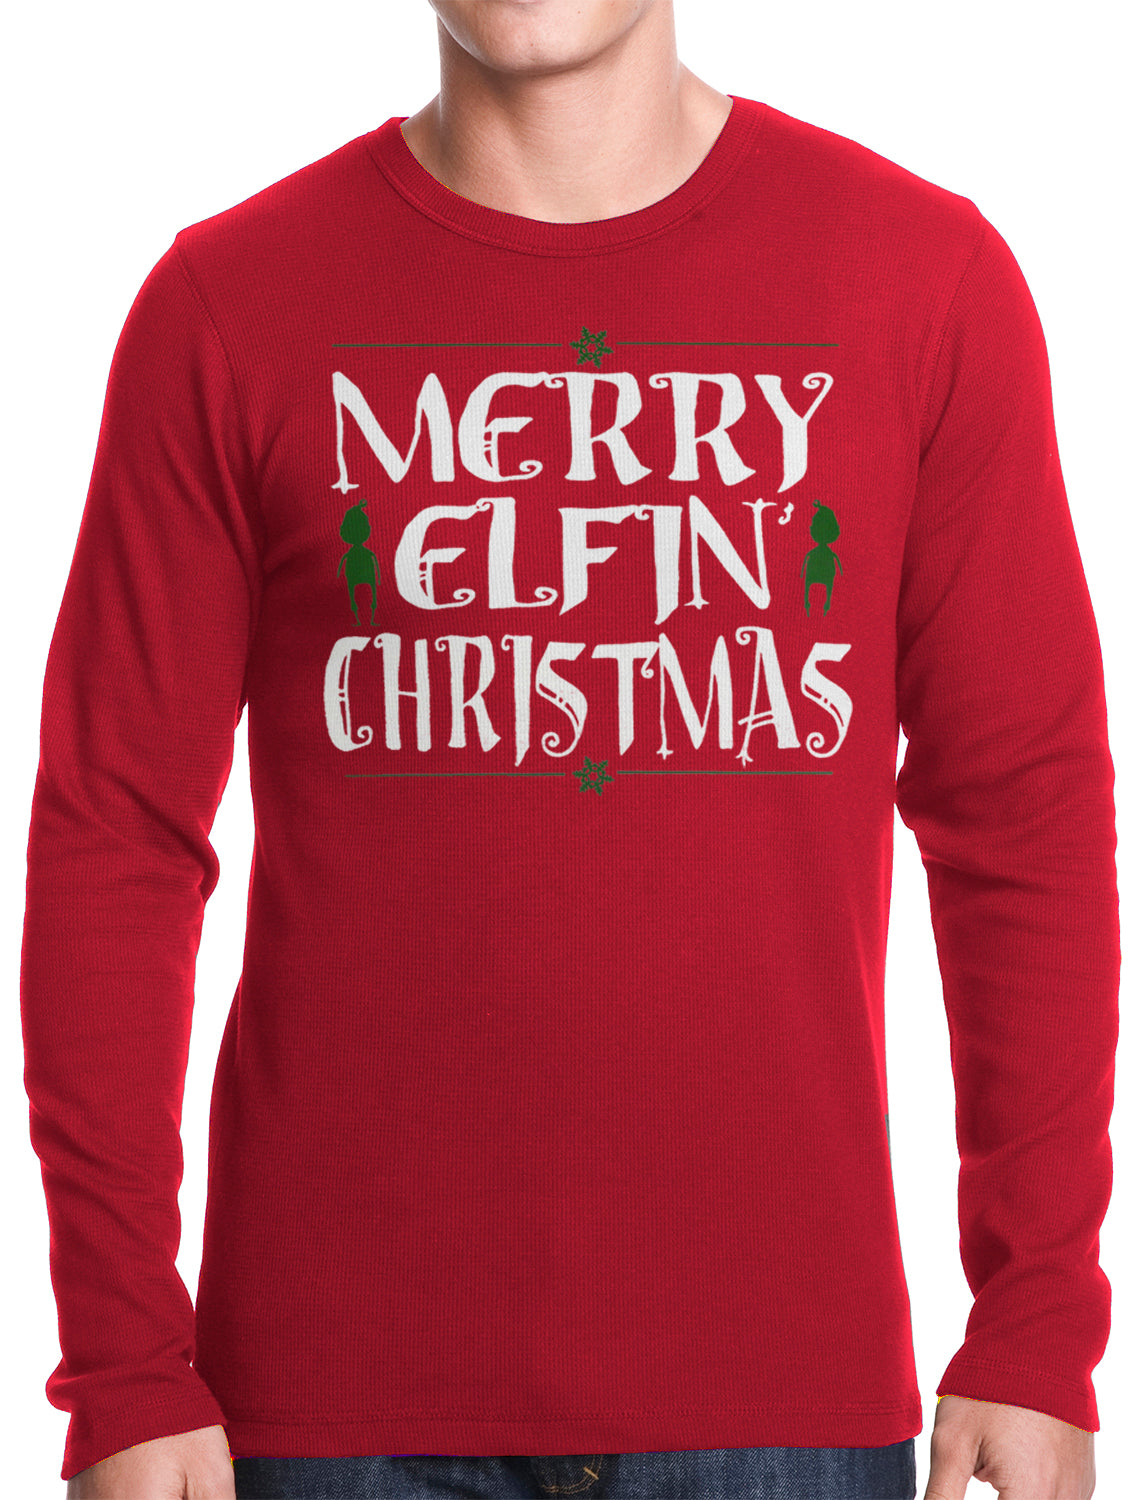 Merry Elfin' Christmas Funny Thermal Longsleeve Shirt